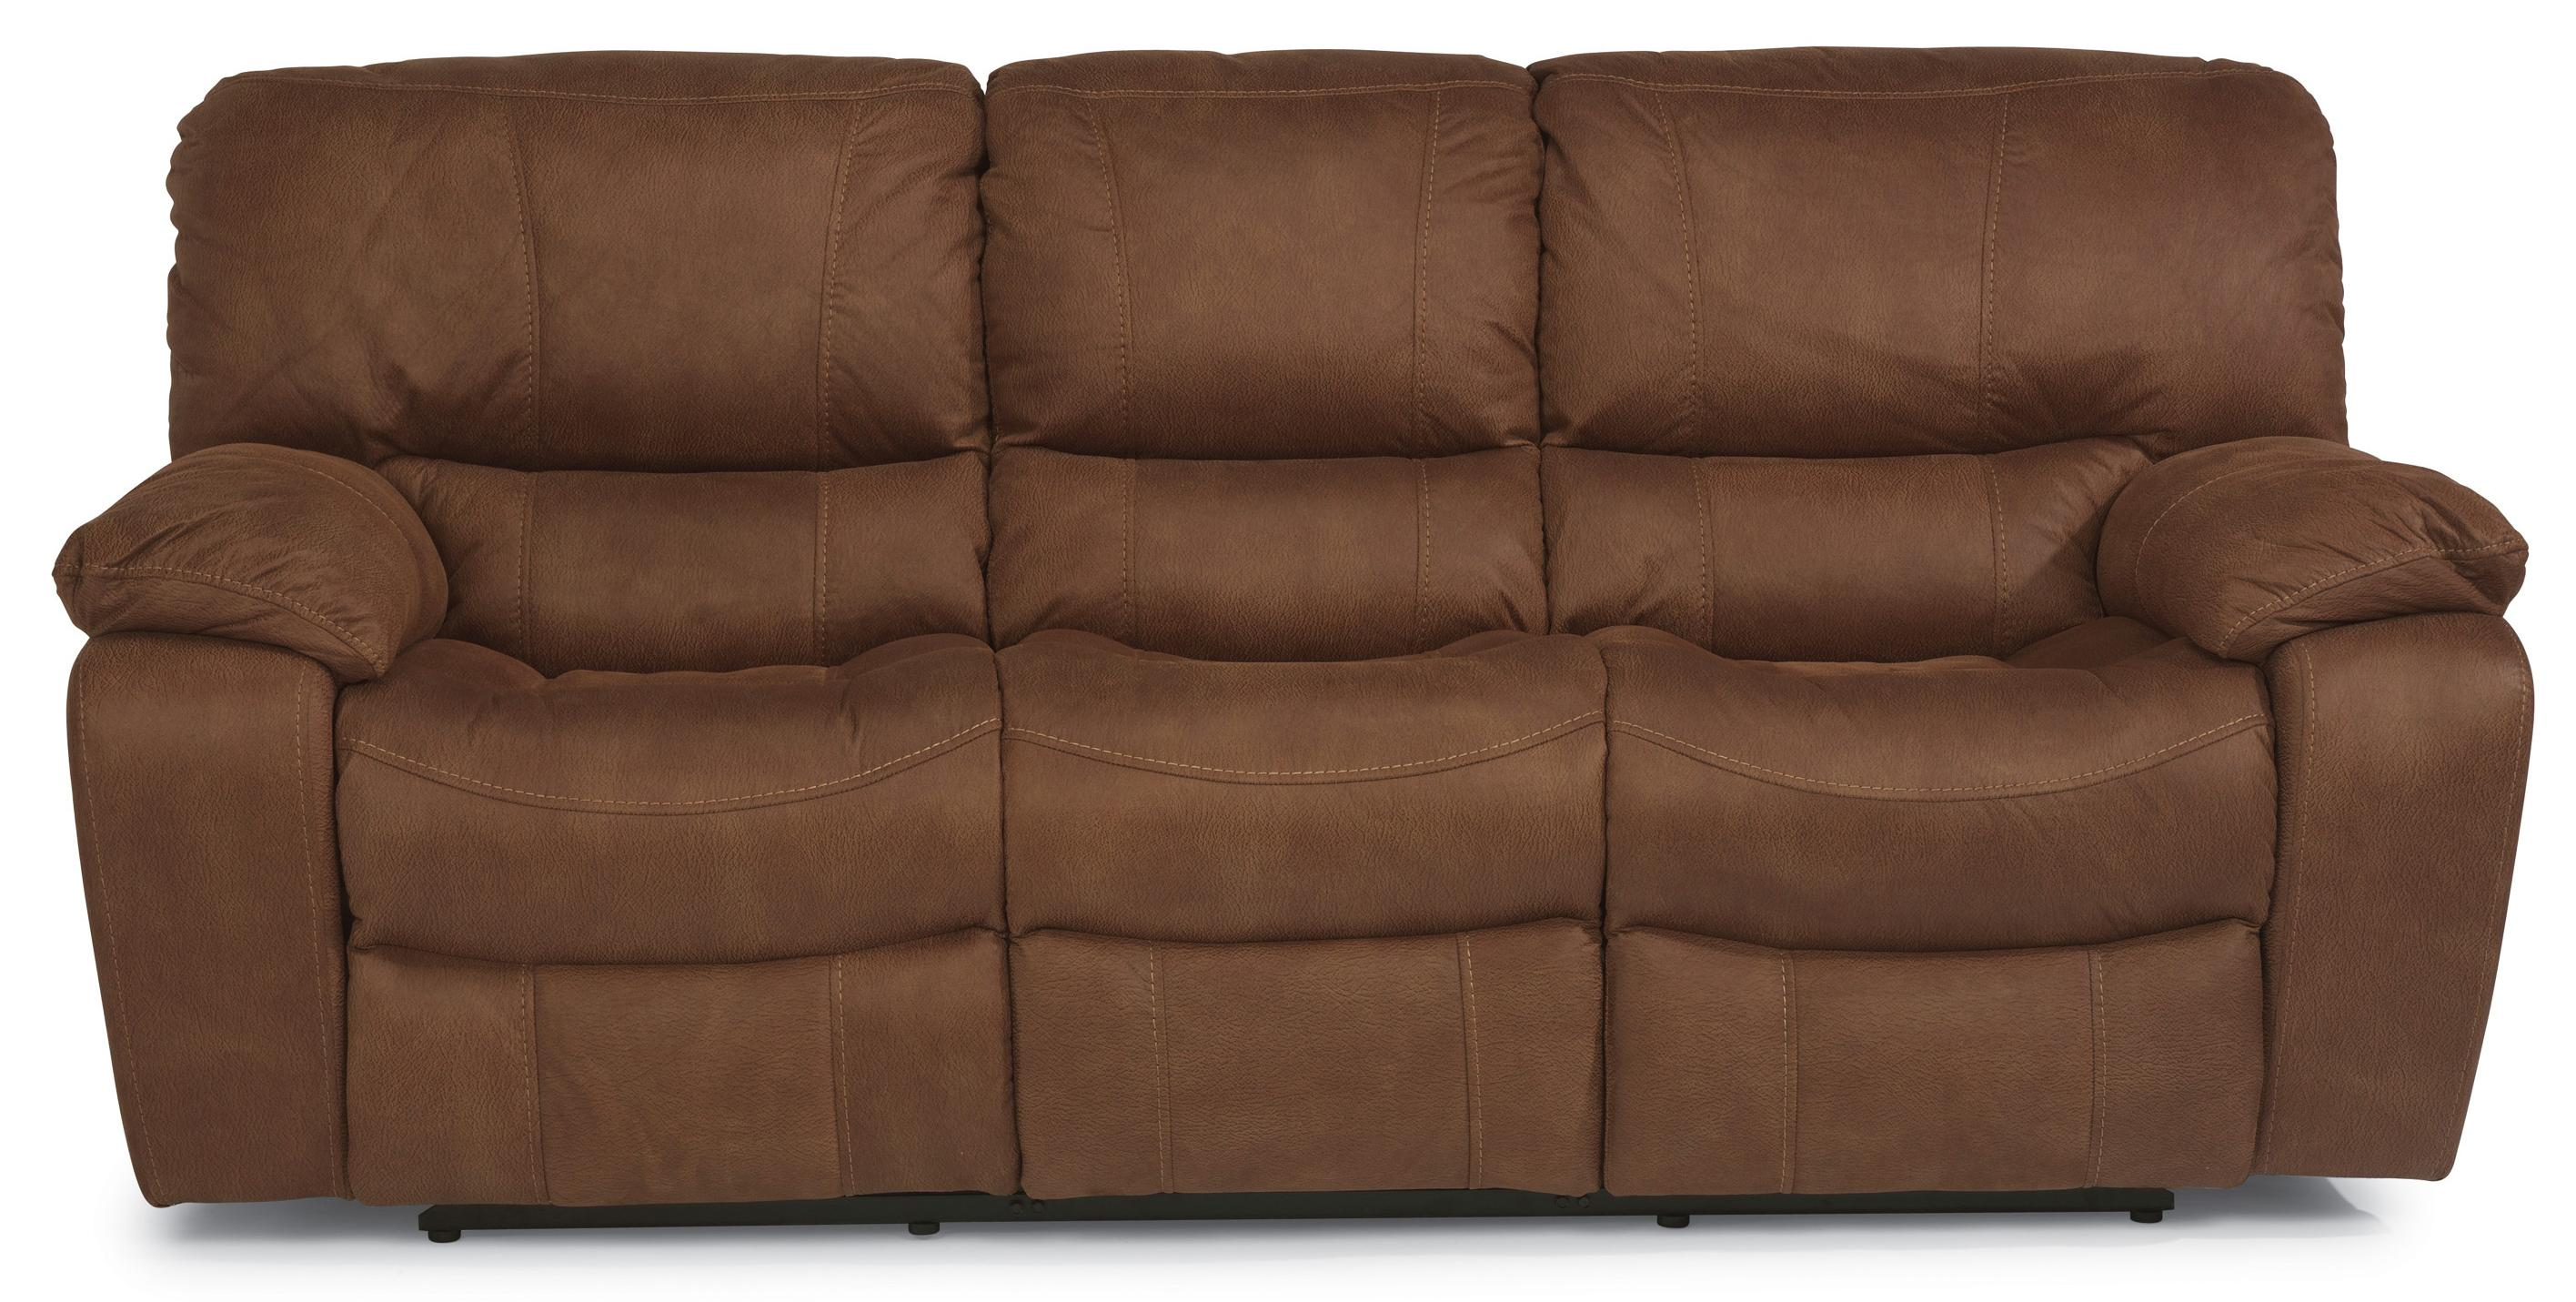 Flexsteel Latitudes Grandview Reclining Sofa with Plush Pillowed